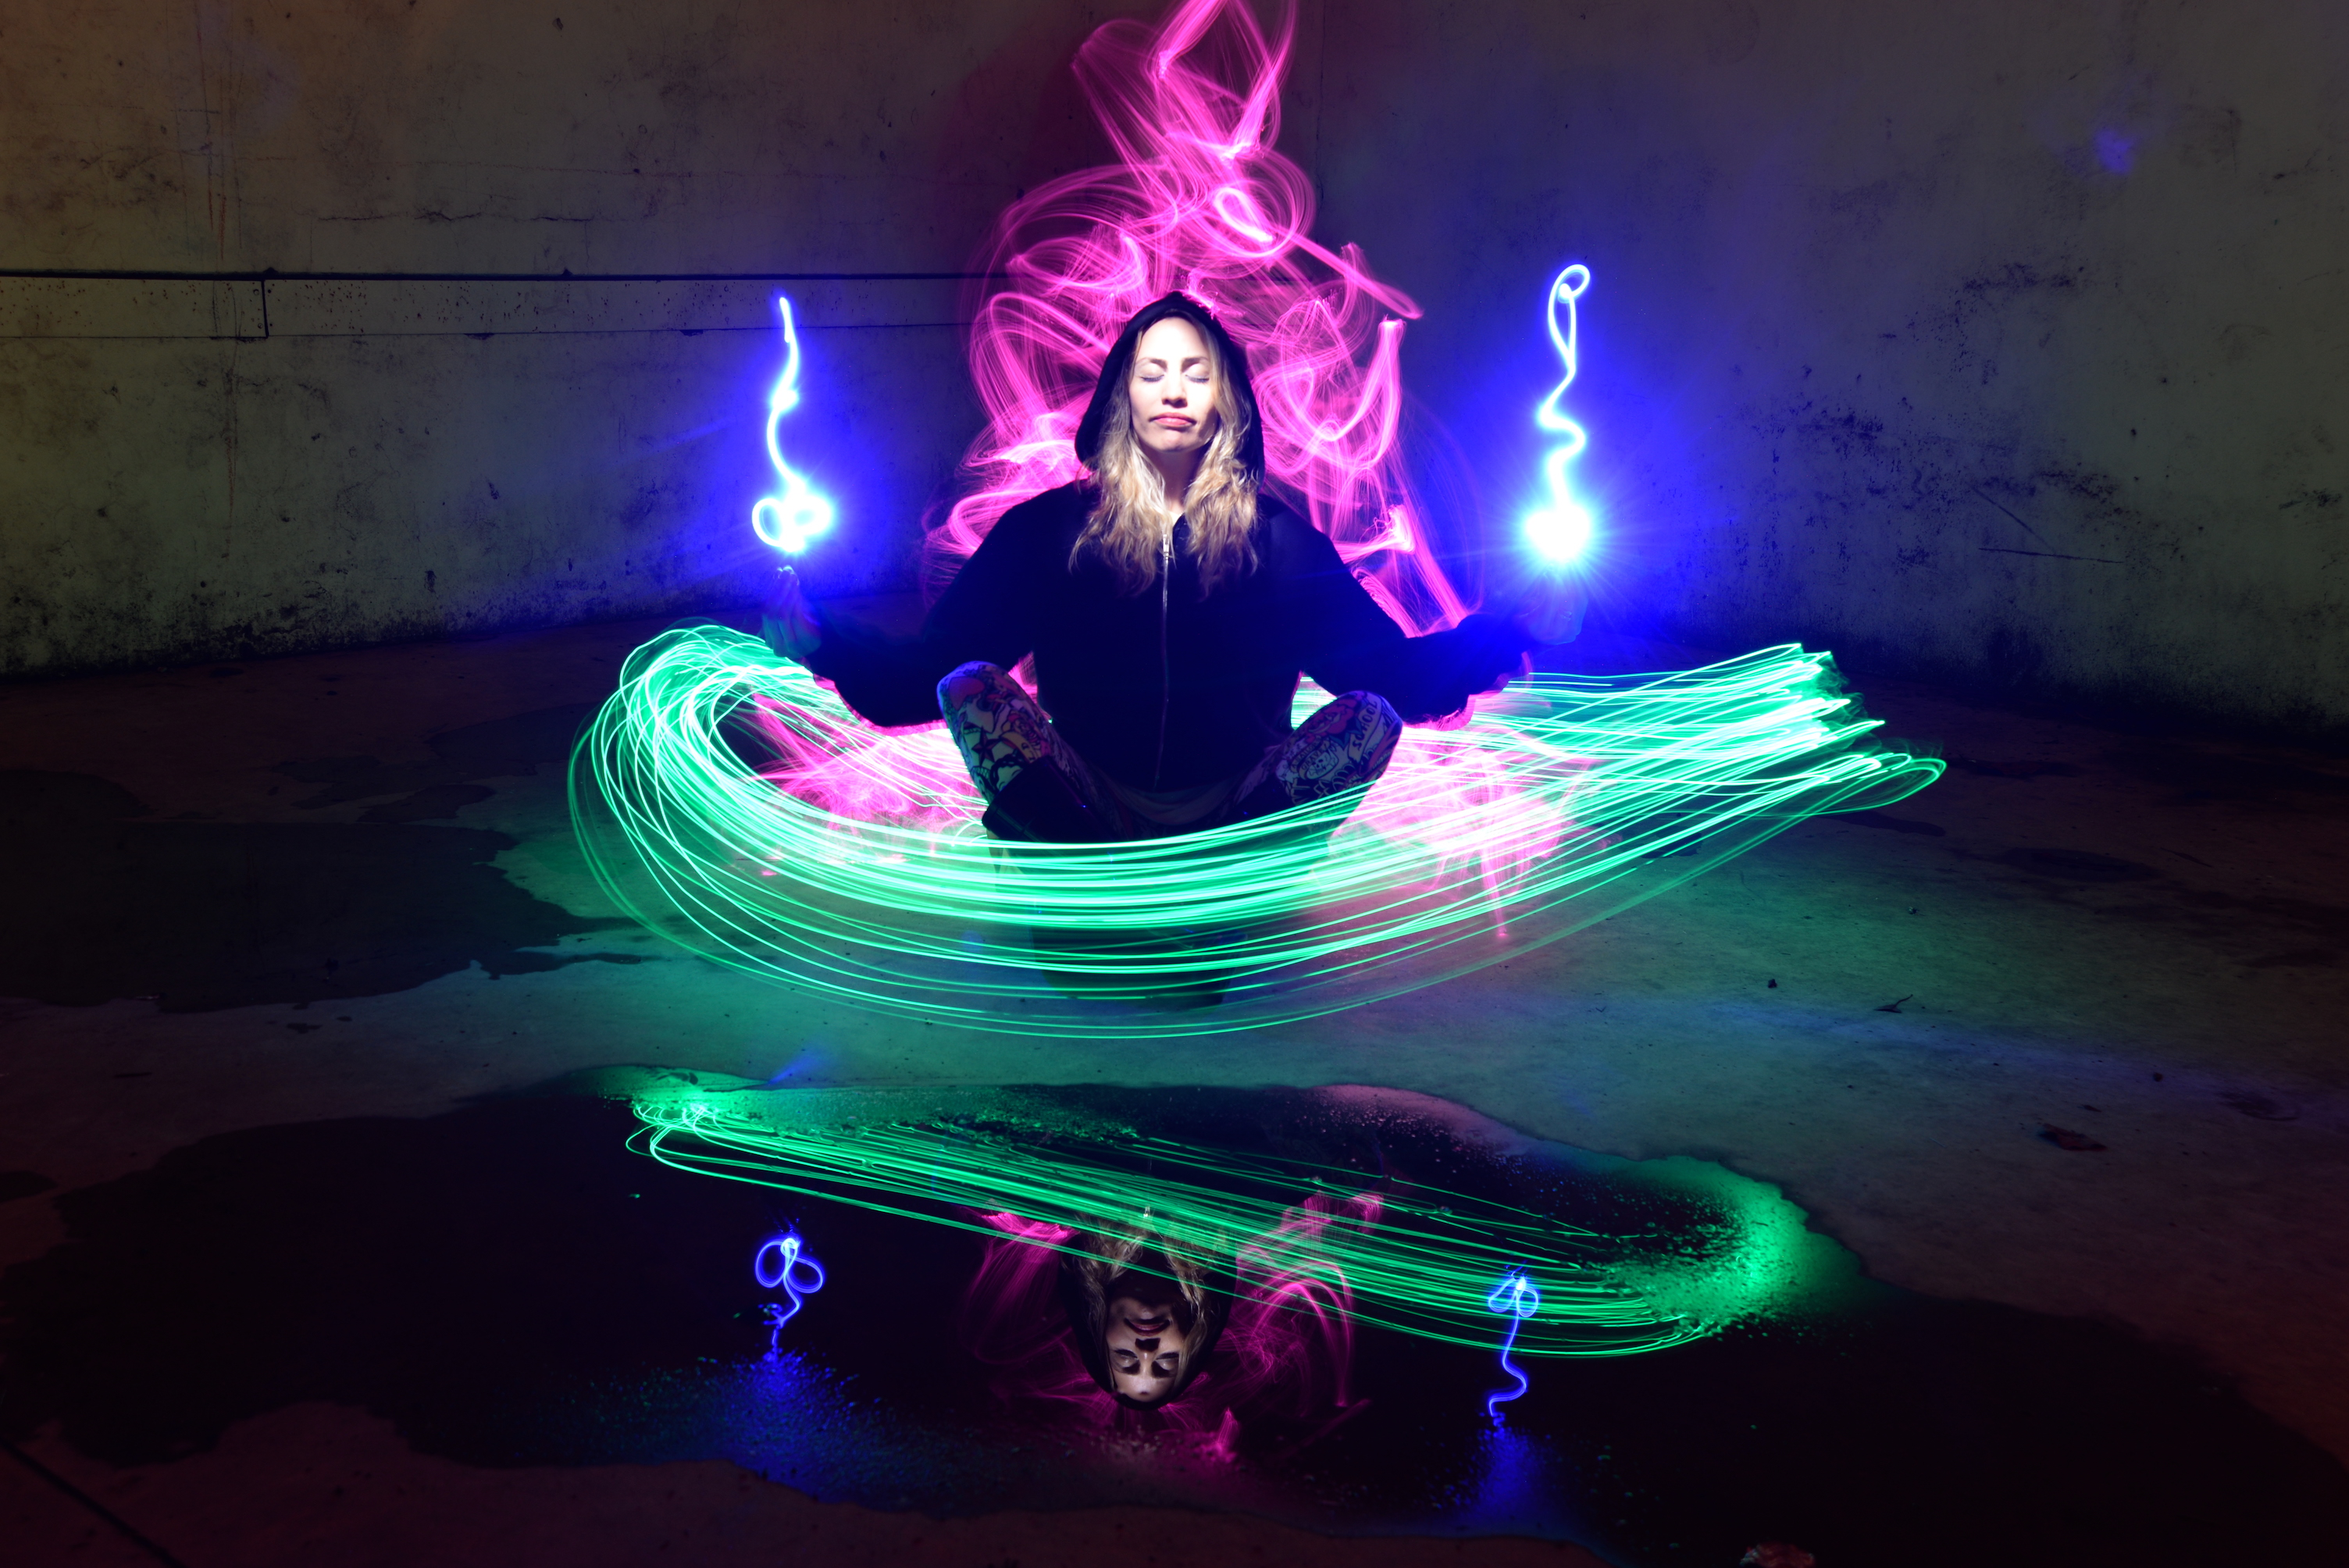 pilar meditation light painting